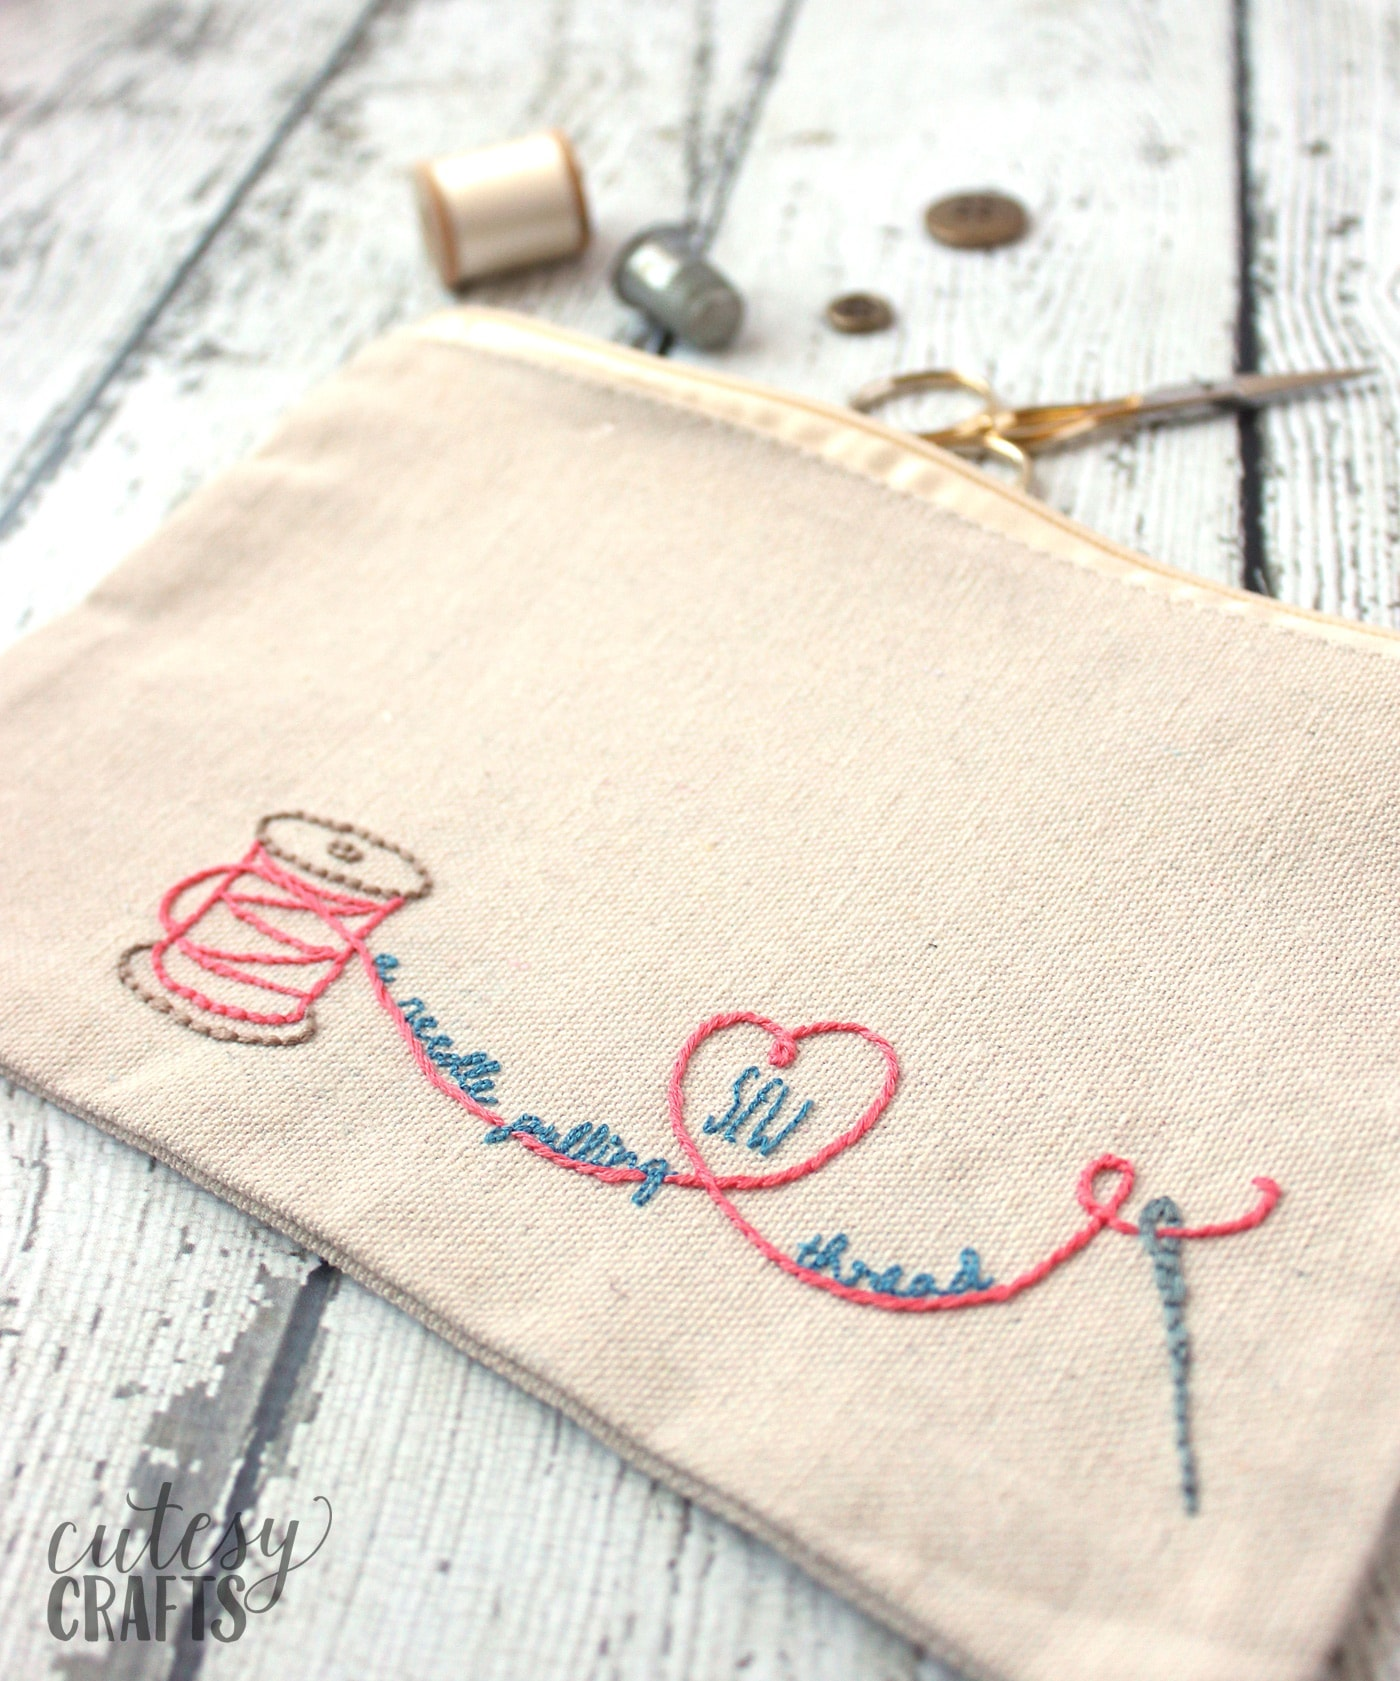 Hand embroidered zip bag on white tabletop